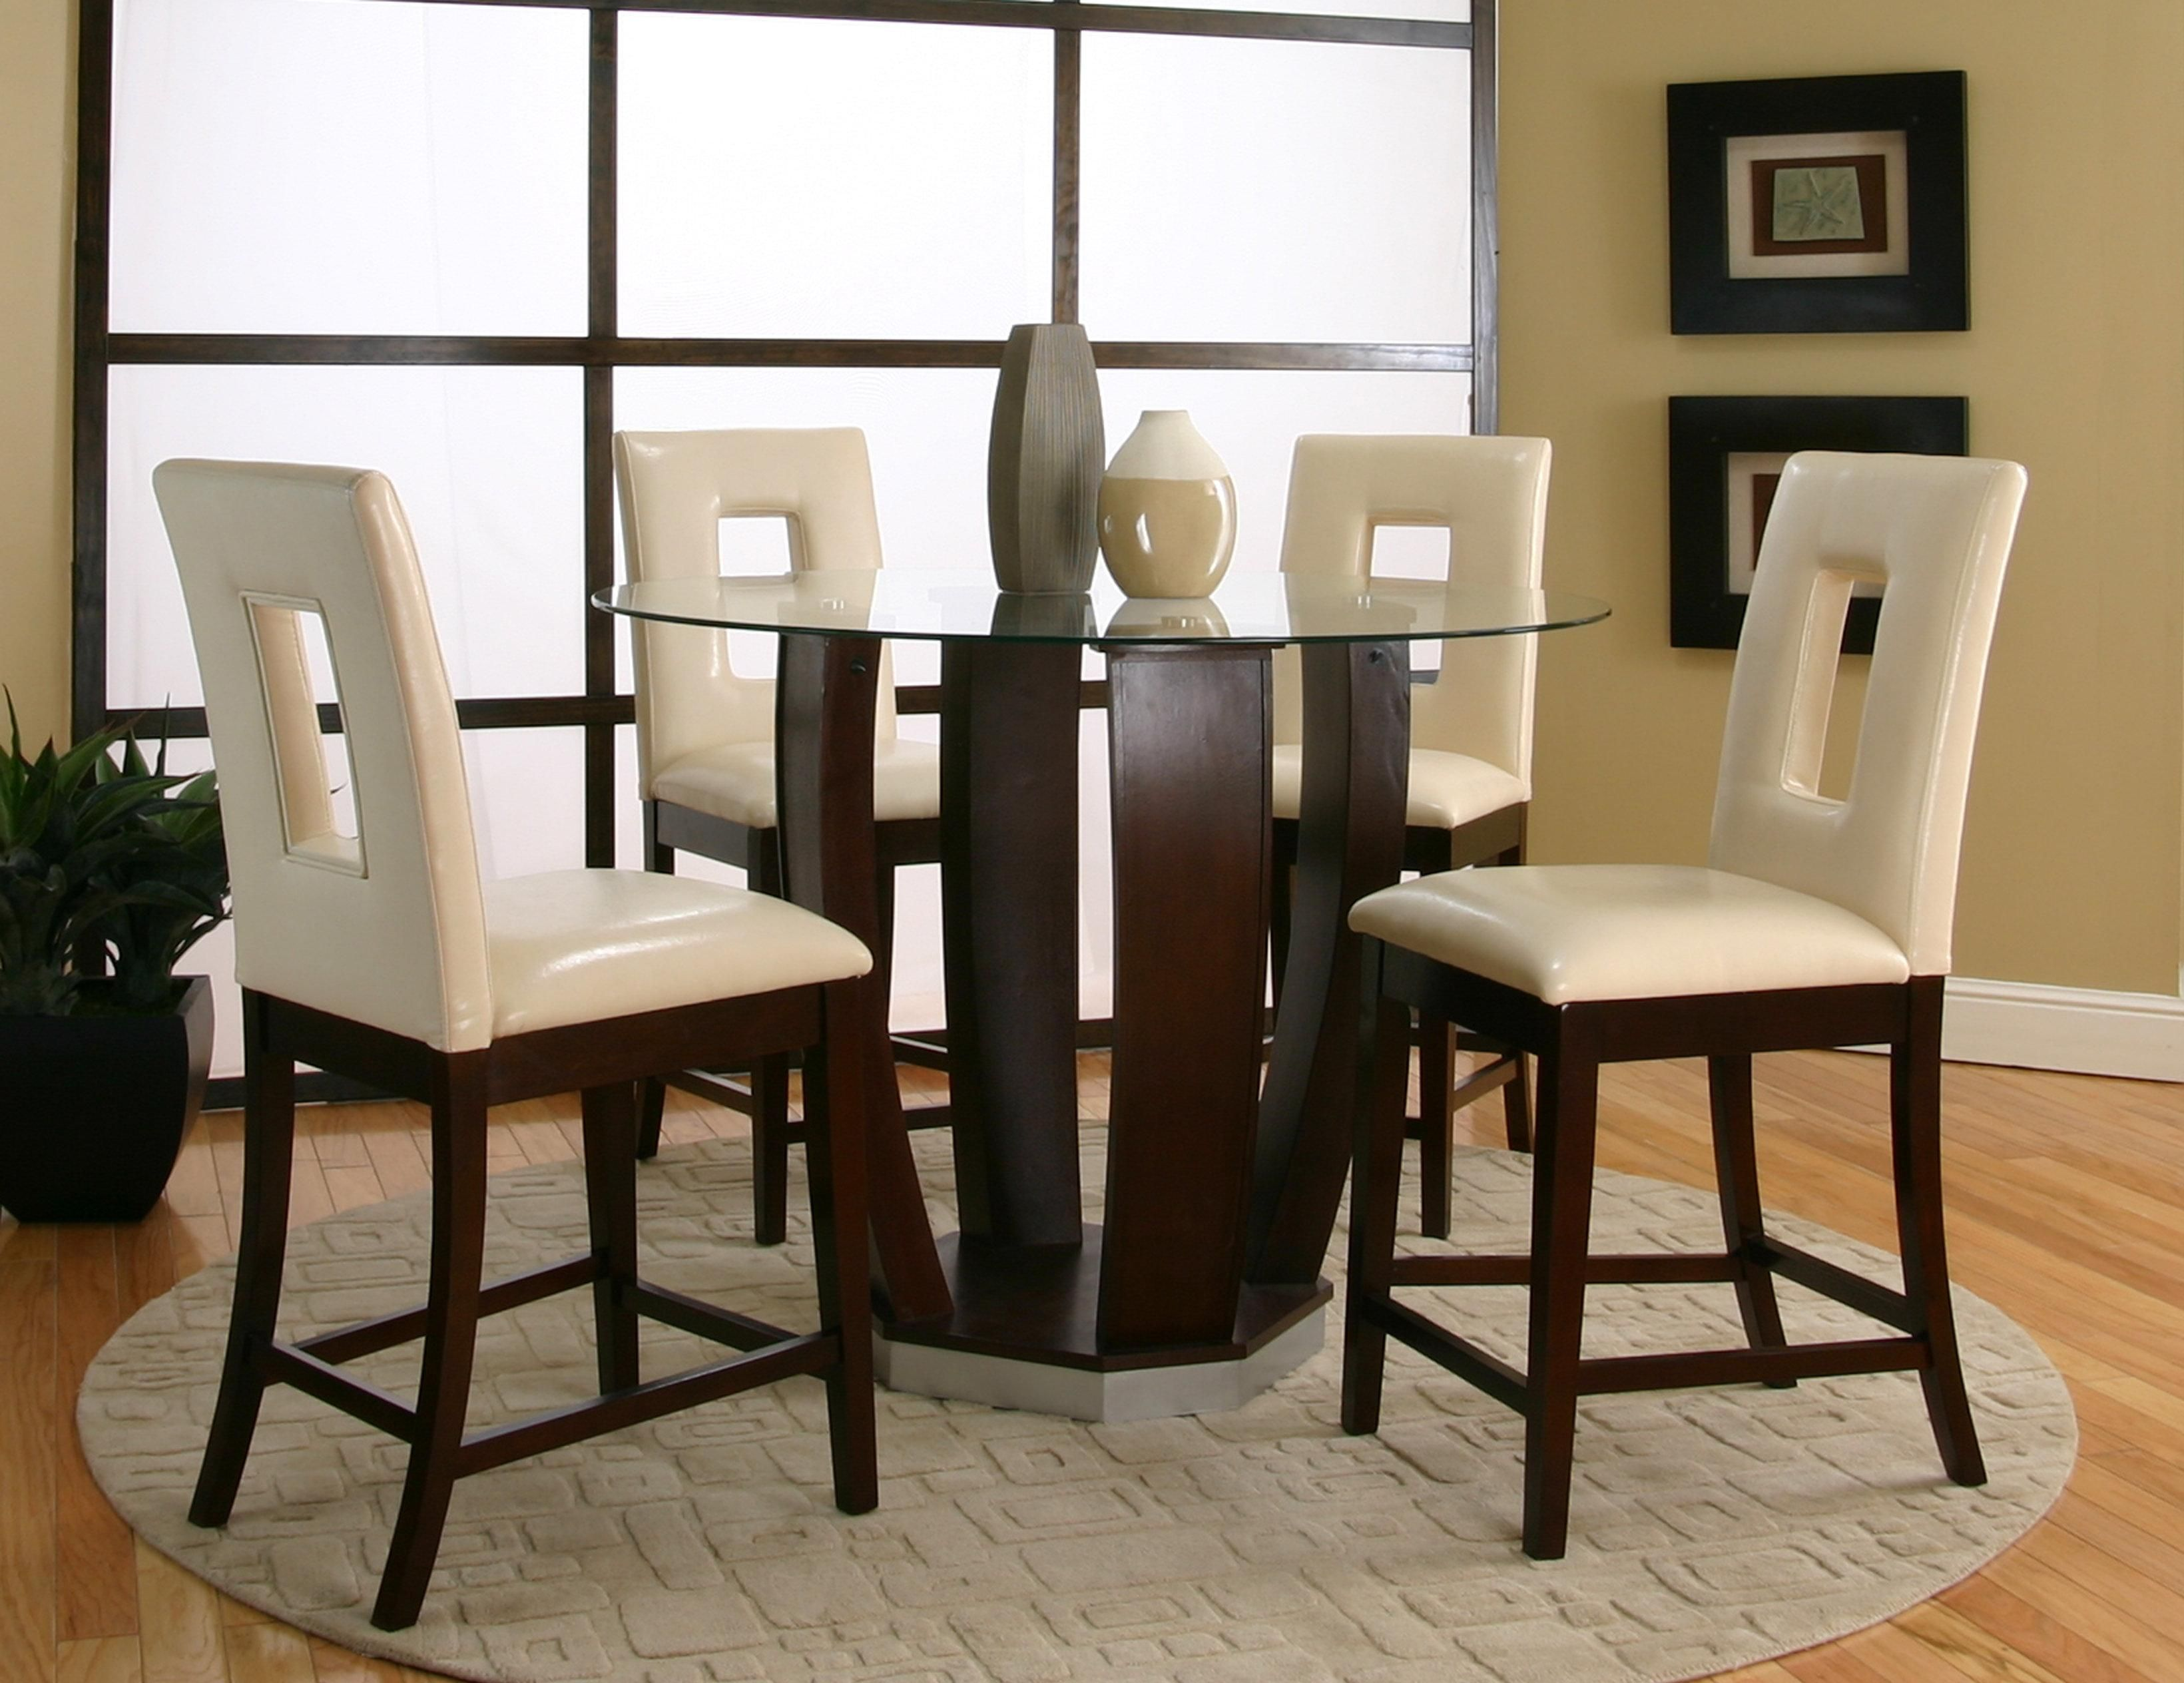 Captivating Contemporary Design   Emerson Tempered Glass Top Pub Table Set By Michael  Aaron Very Cool!